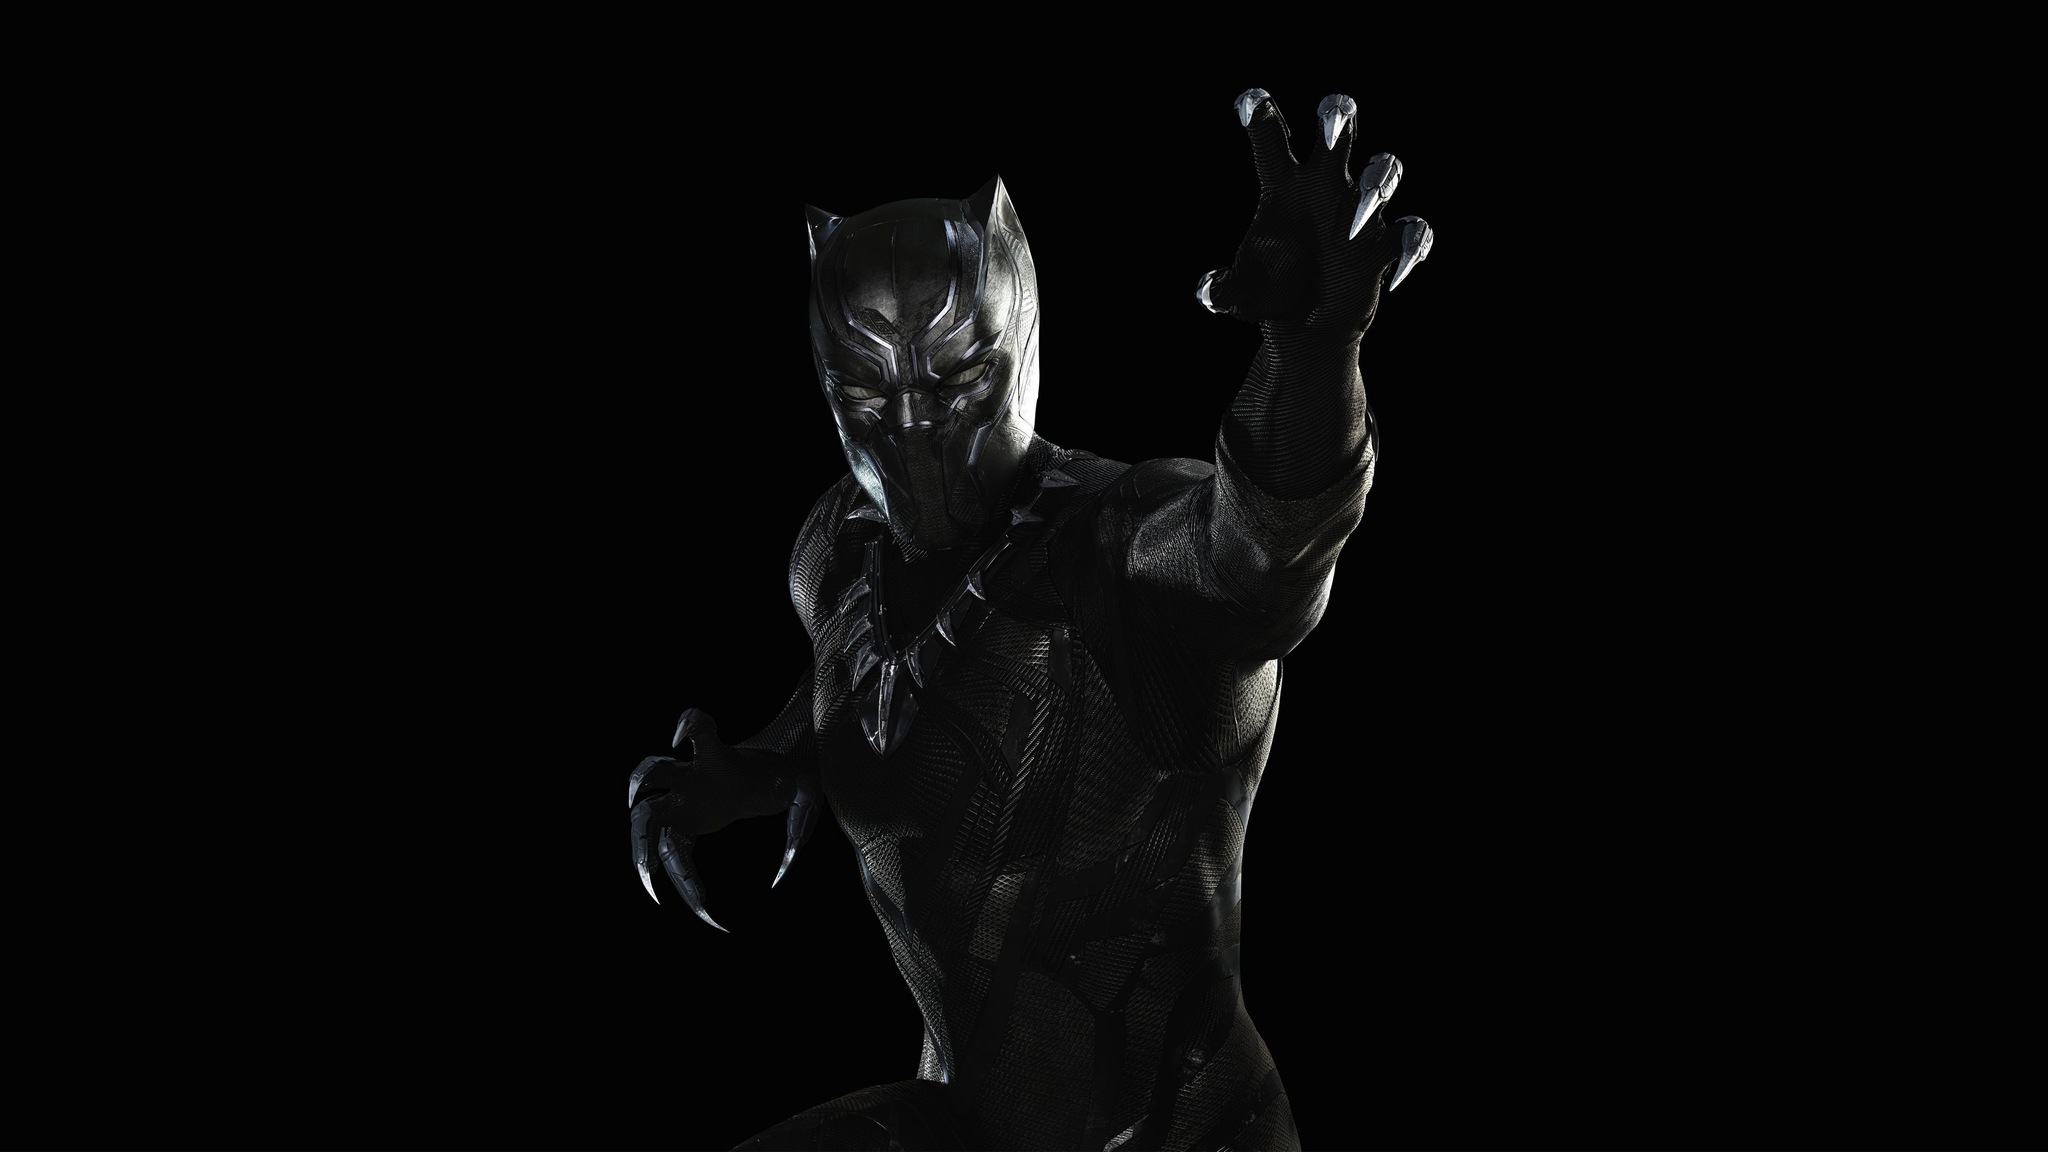 2048x1152 black panther captain america civil war 2048x1152 black panther captain america civil warg voltagebd Choice Image